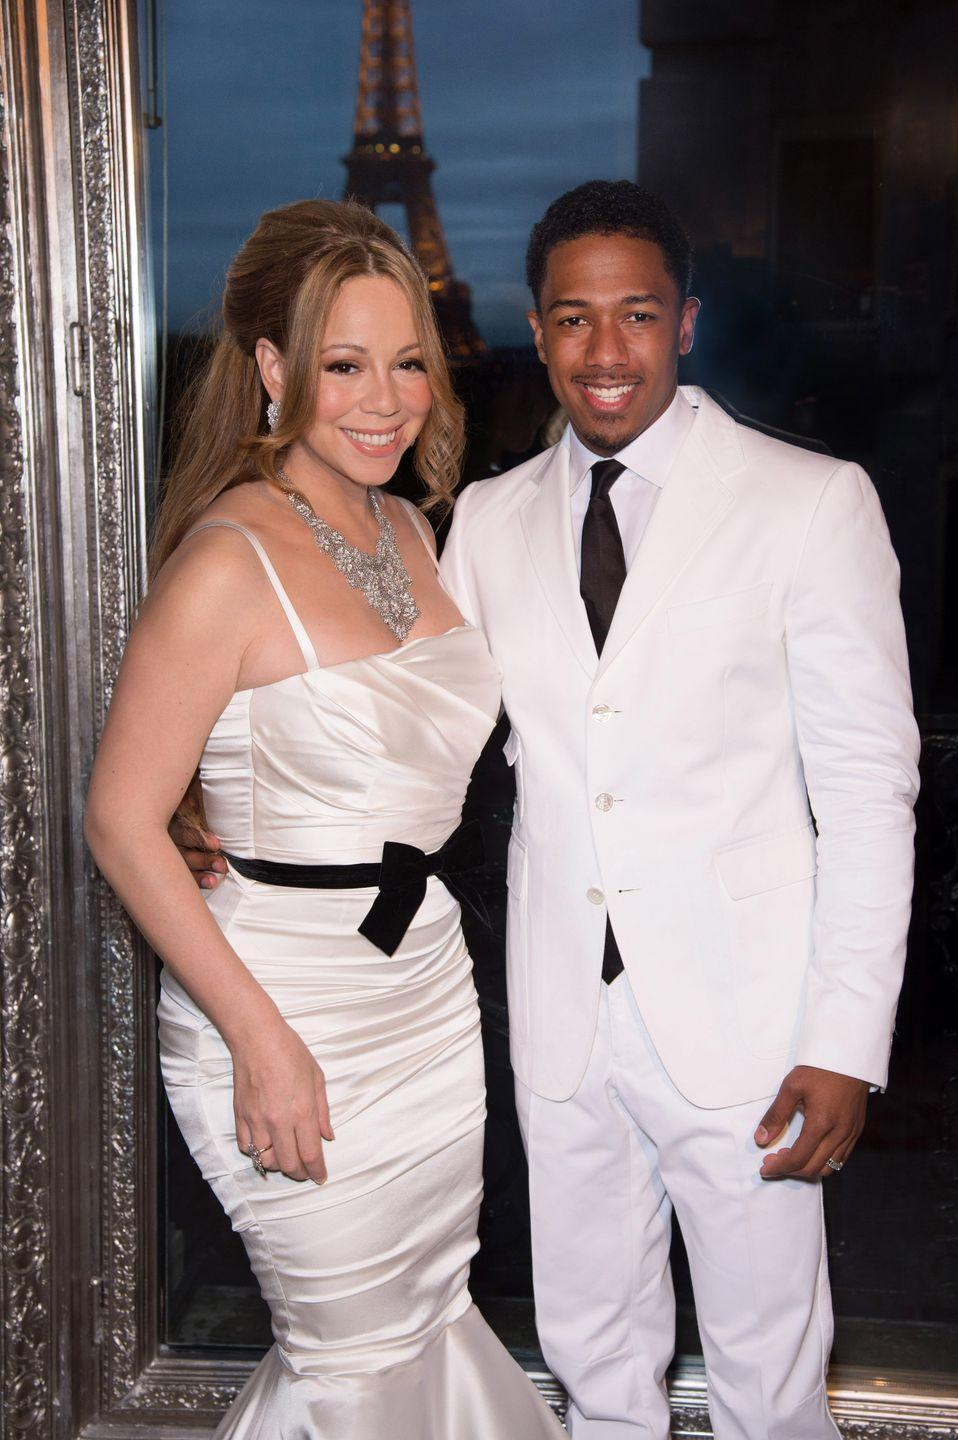 "<p>During their five-year marriage, Mariah Carey and Nick Cannon renewed their vows twice. One of those times involved a magical celebration <a href=""https://www.eonline.com/news/413704/mariah-carey-and-nick-cannon-s-beautiful-disneyland-vow-renewal-find-out-how-much-it-cost"" rel=""nofollow noopener"" target=""_blank"" data-ylk=""slk:at Disneyland."" class=""link rapid-noclick-resp"">at Disneyland.</a> The dreamy nuptials happened after the park closed and reportedly cost $180,000<em>. </em>The couple filed for divorce in 2014. </p>"